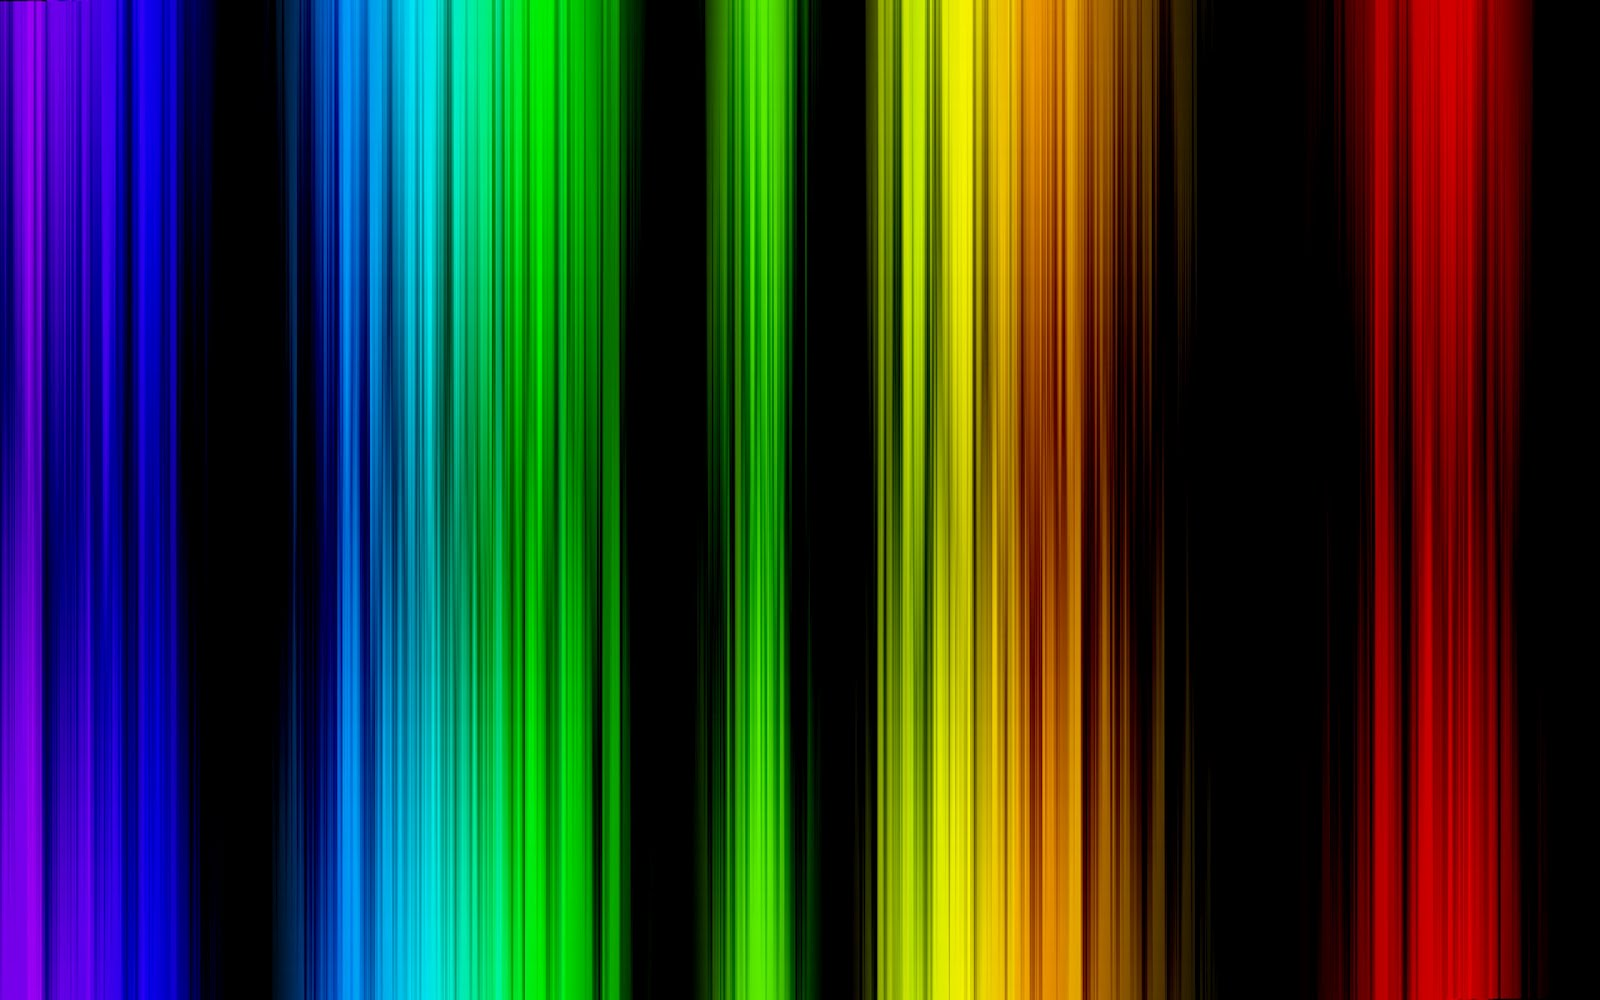 Awesome Colorful Backgrounds HD wallpaper background 1600x1000